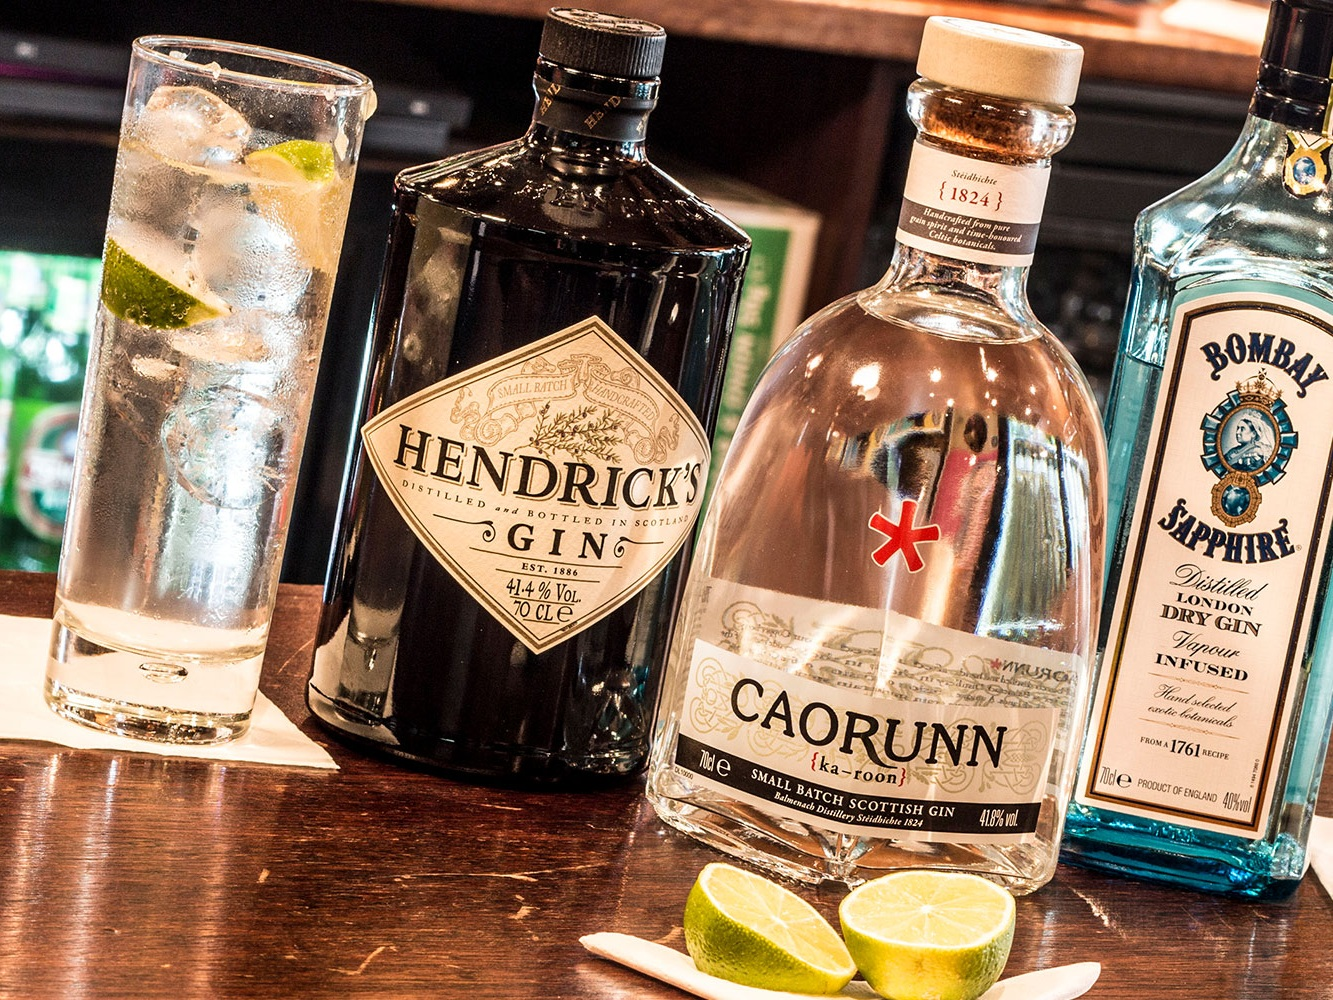 Drink @ The Vic - As well as the local favourites and pub staples, we also have a large craft gin range including local tonics, local craft on draught plus an extensive bottle range, 30 malt whiskies and 4 real ale pumps. We've got something for all tastes!